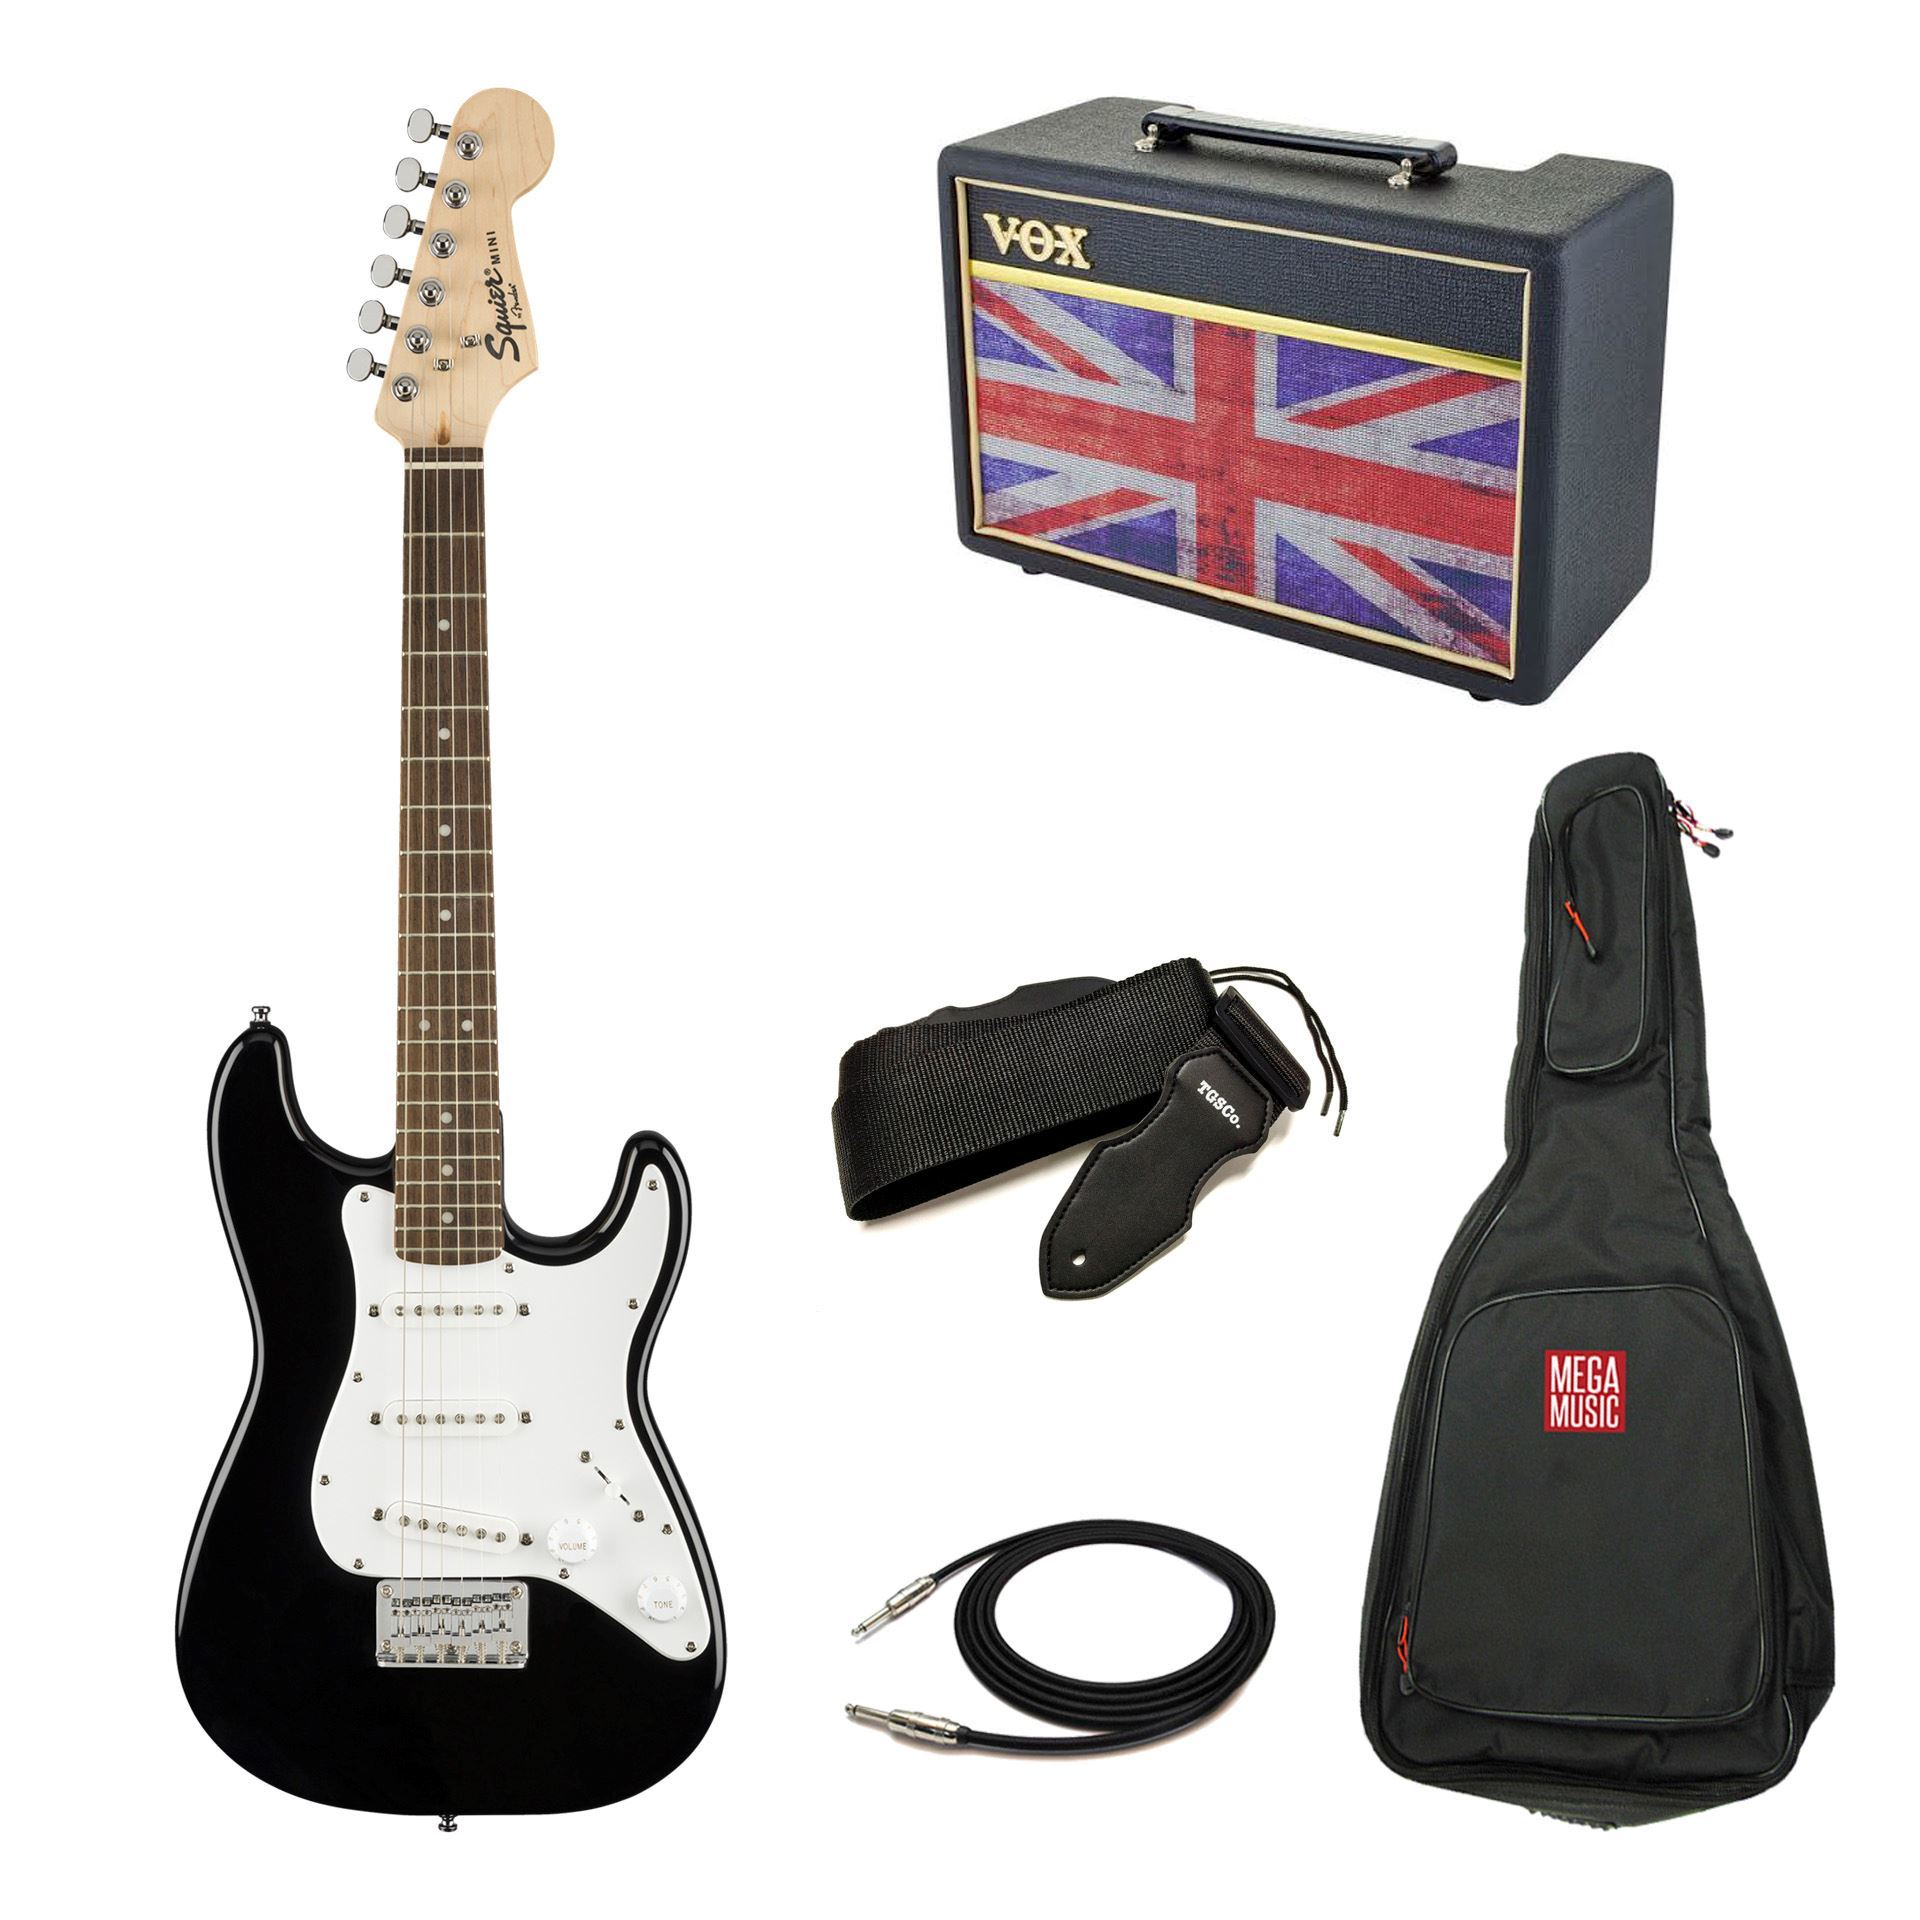 Squier Mini Strat Electric Guitar and Ashton Amp Starter Pack